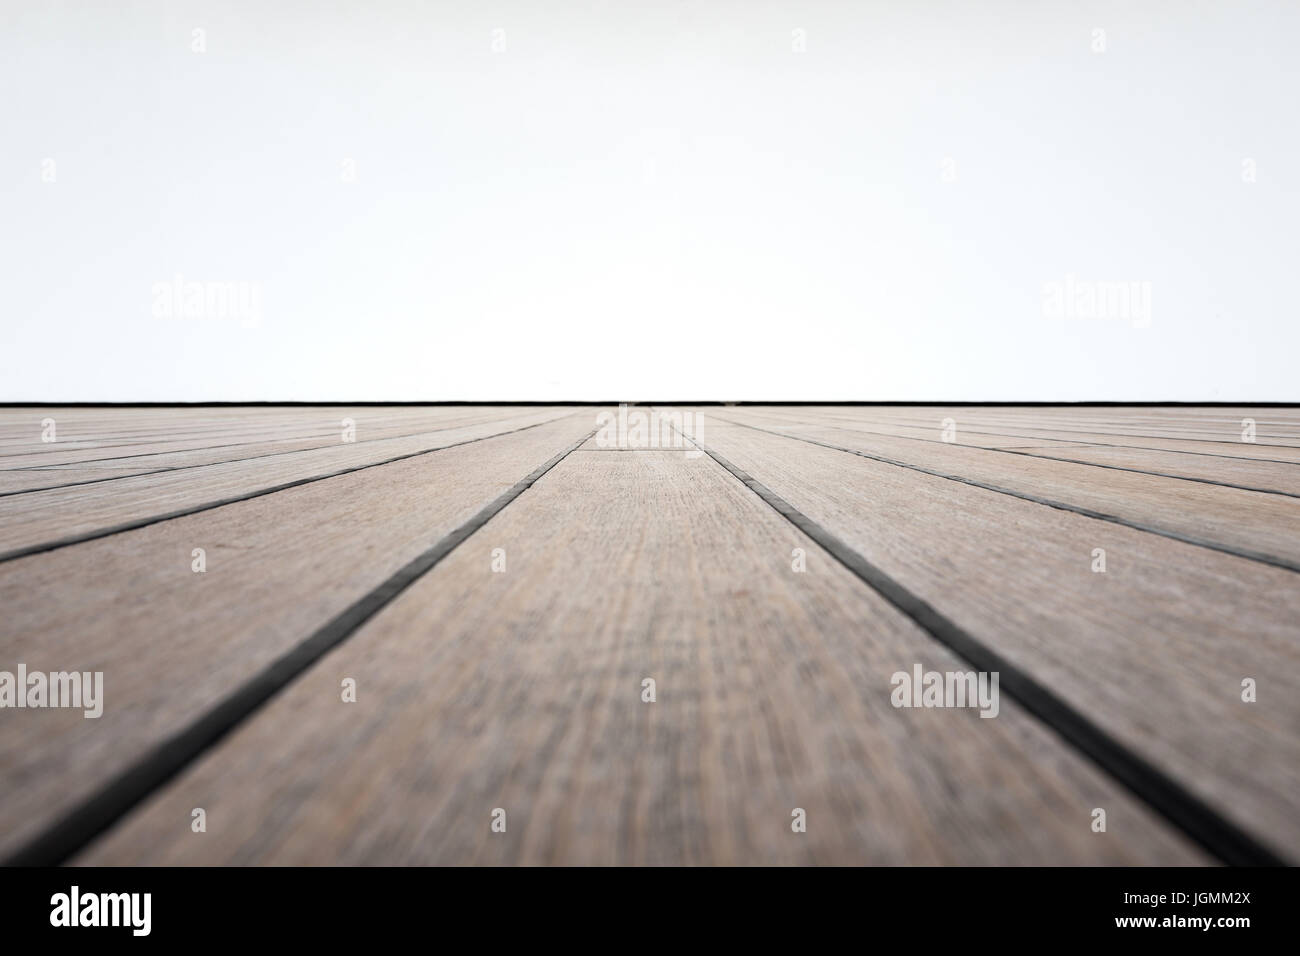 wooden parquet floor of a stage - Stock Image